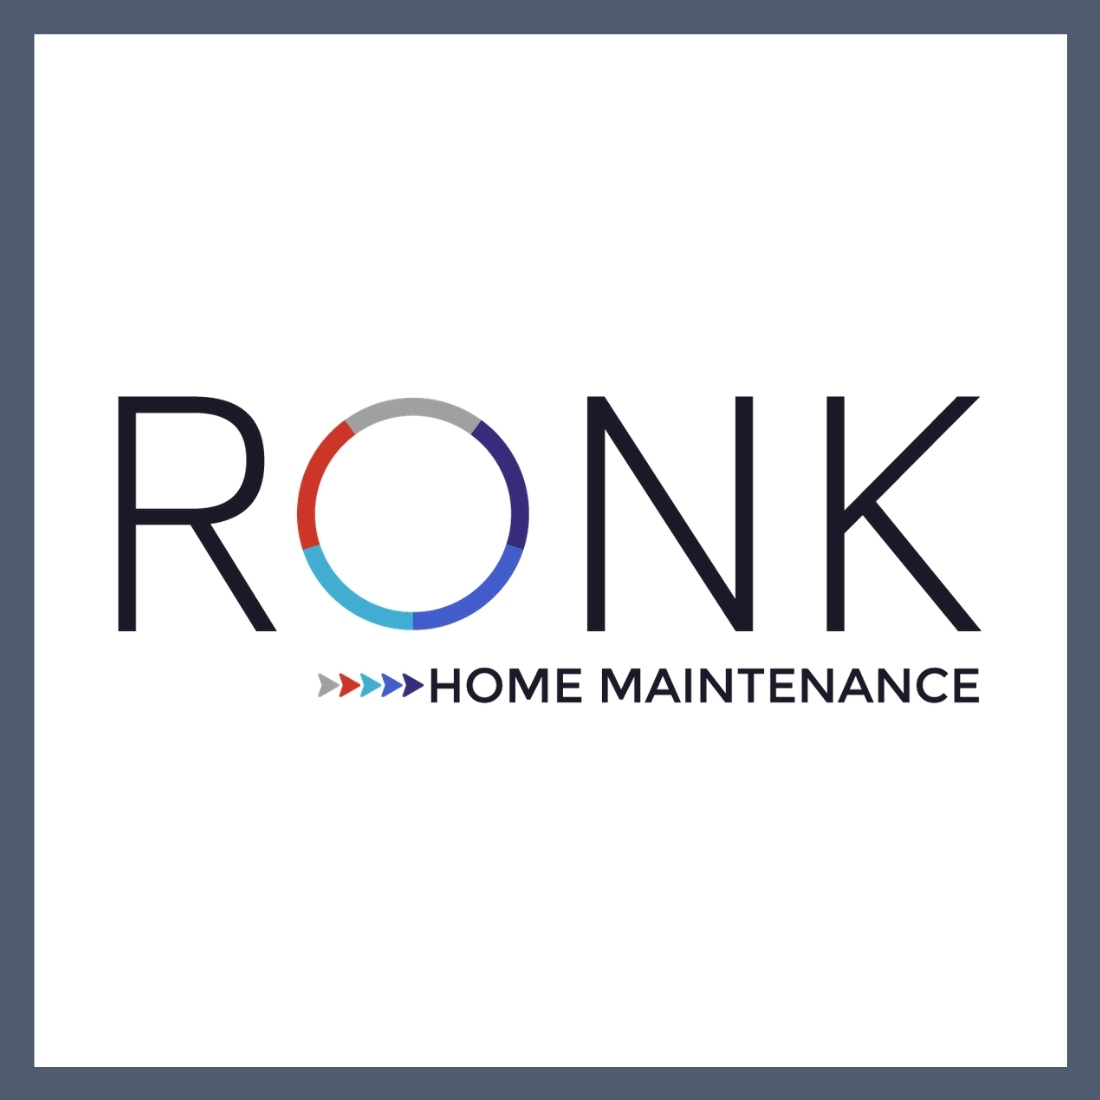 Ronk Home Maintenance | Flexure Group